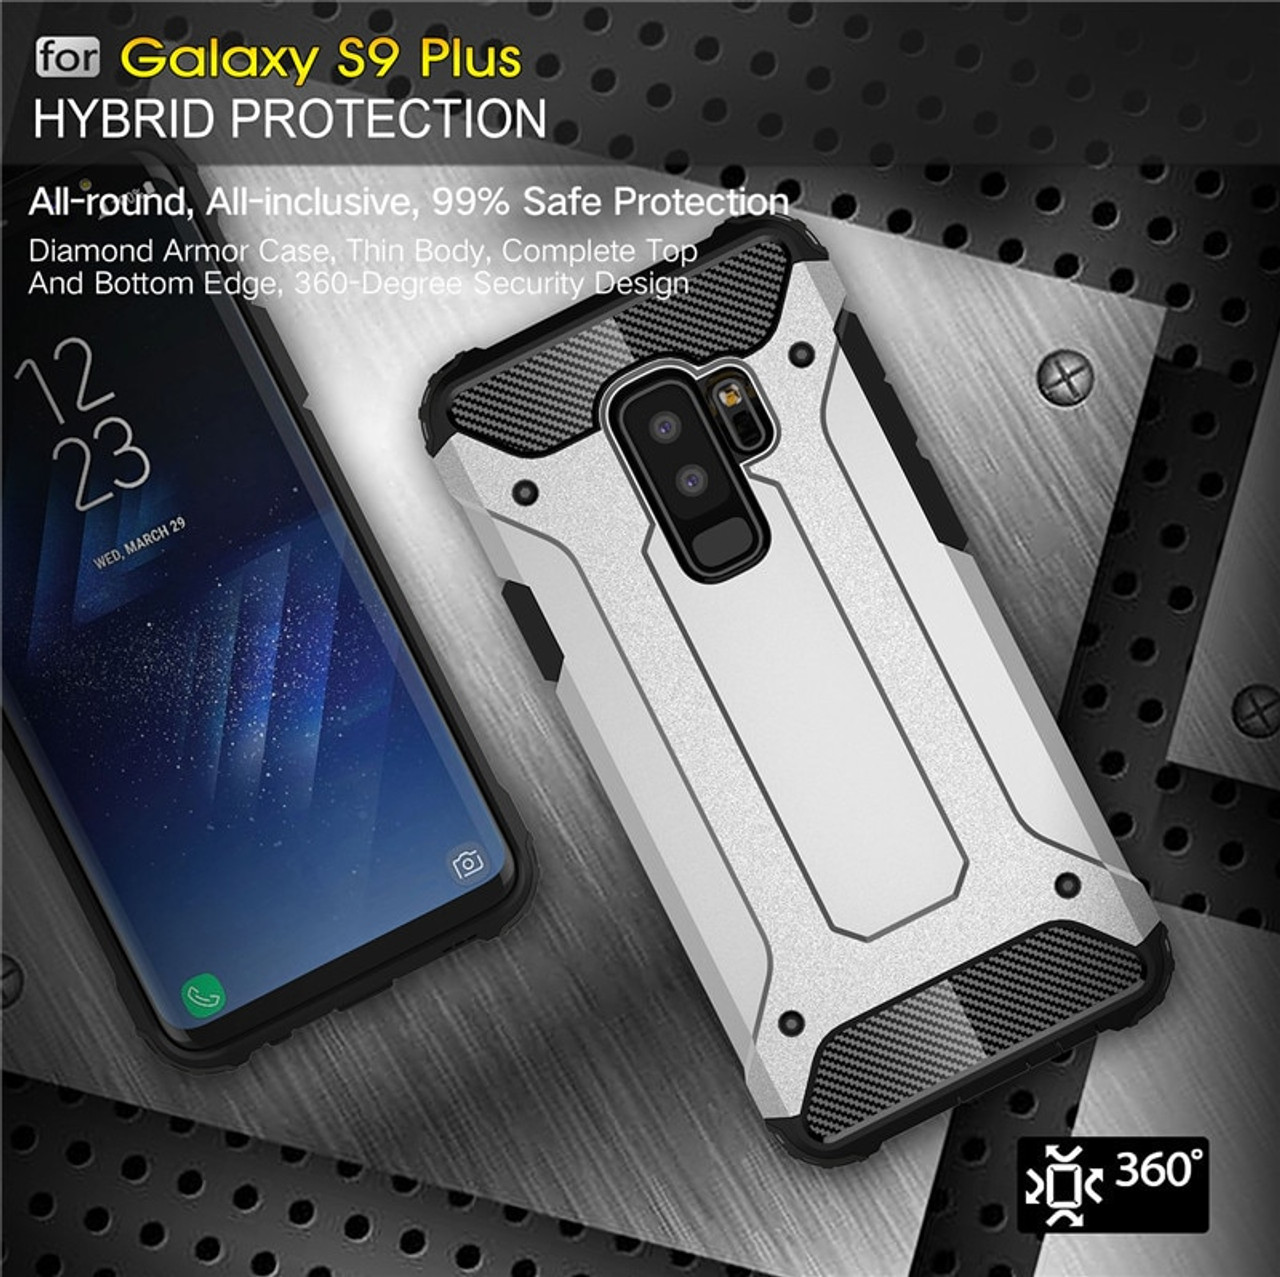 Rubber Armor Case For Samsung Galaxy S8 S9 Plus S7 Edge S5 S6 Note 4 5 8 9  A6 A7 A8 J8 J4 J6 Prime 2018 Hard PC Shockproof Cover